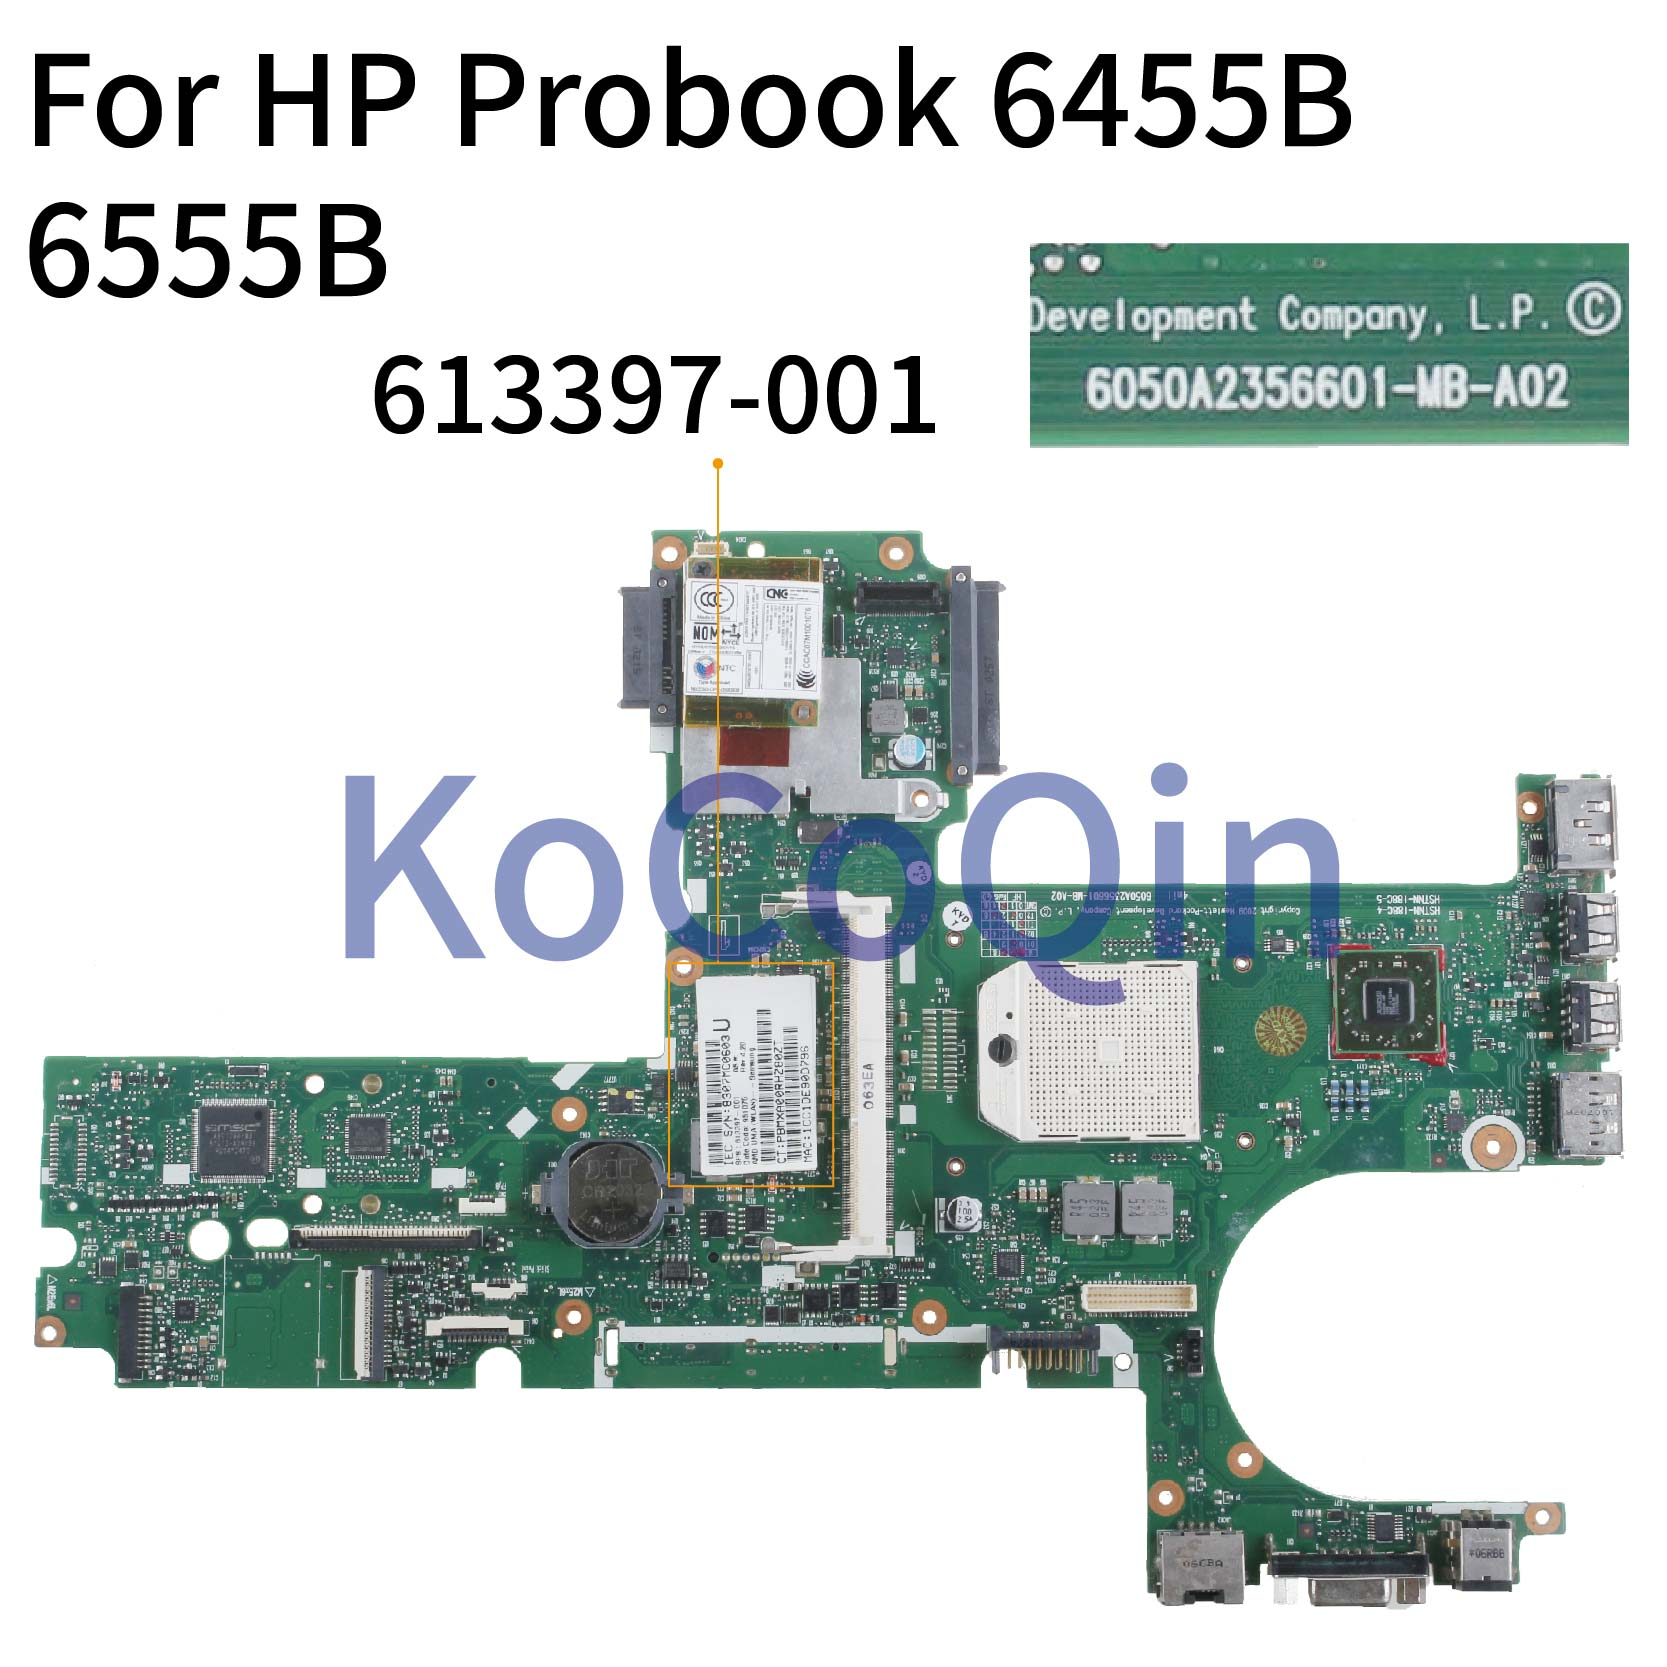 KoCoQin Laptop Motherboard For HP Probook 6455B 6555B Socket S1 Mainboard 613397-001 613397-501 6050A2356601-MB-A02